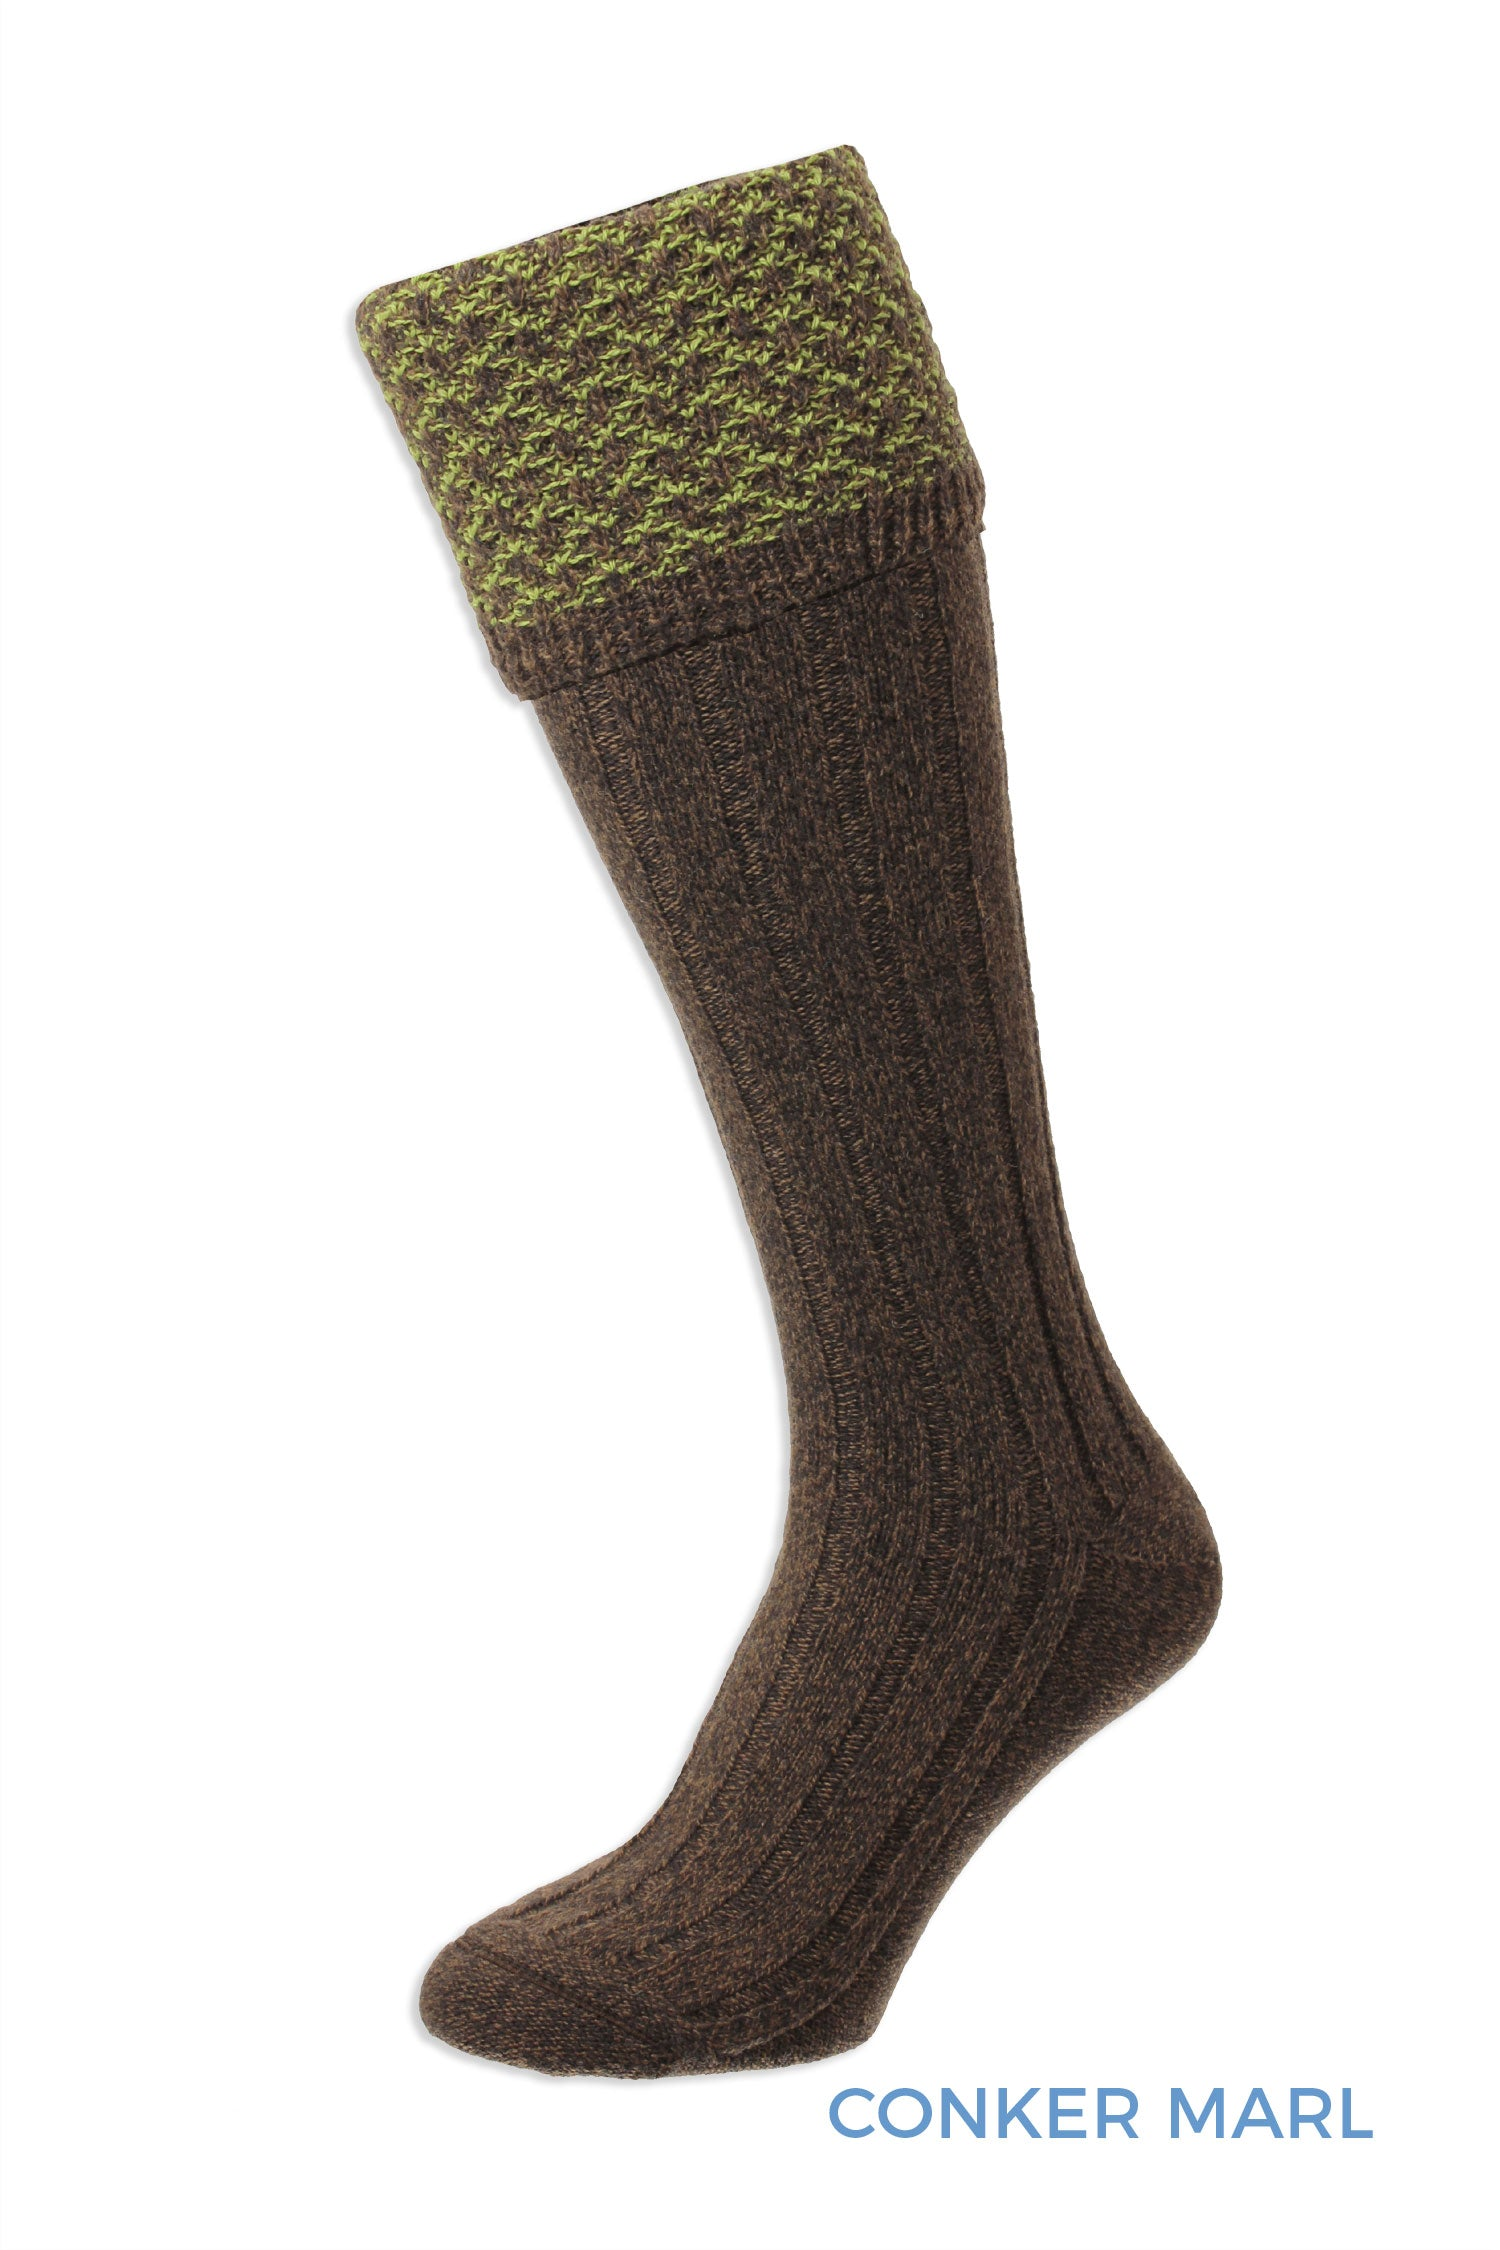 Forest Marl Honeycomb Textured Top Shooting Sock by HJ Hall